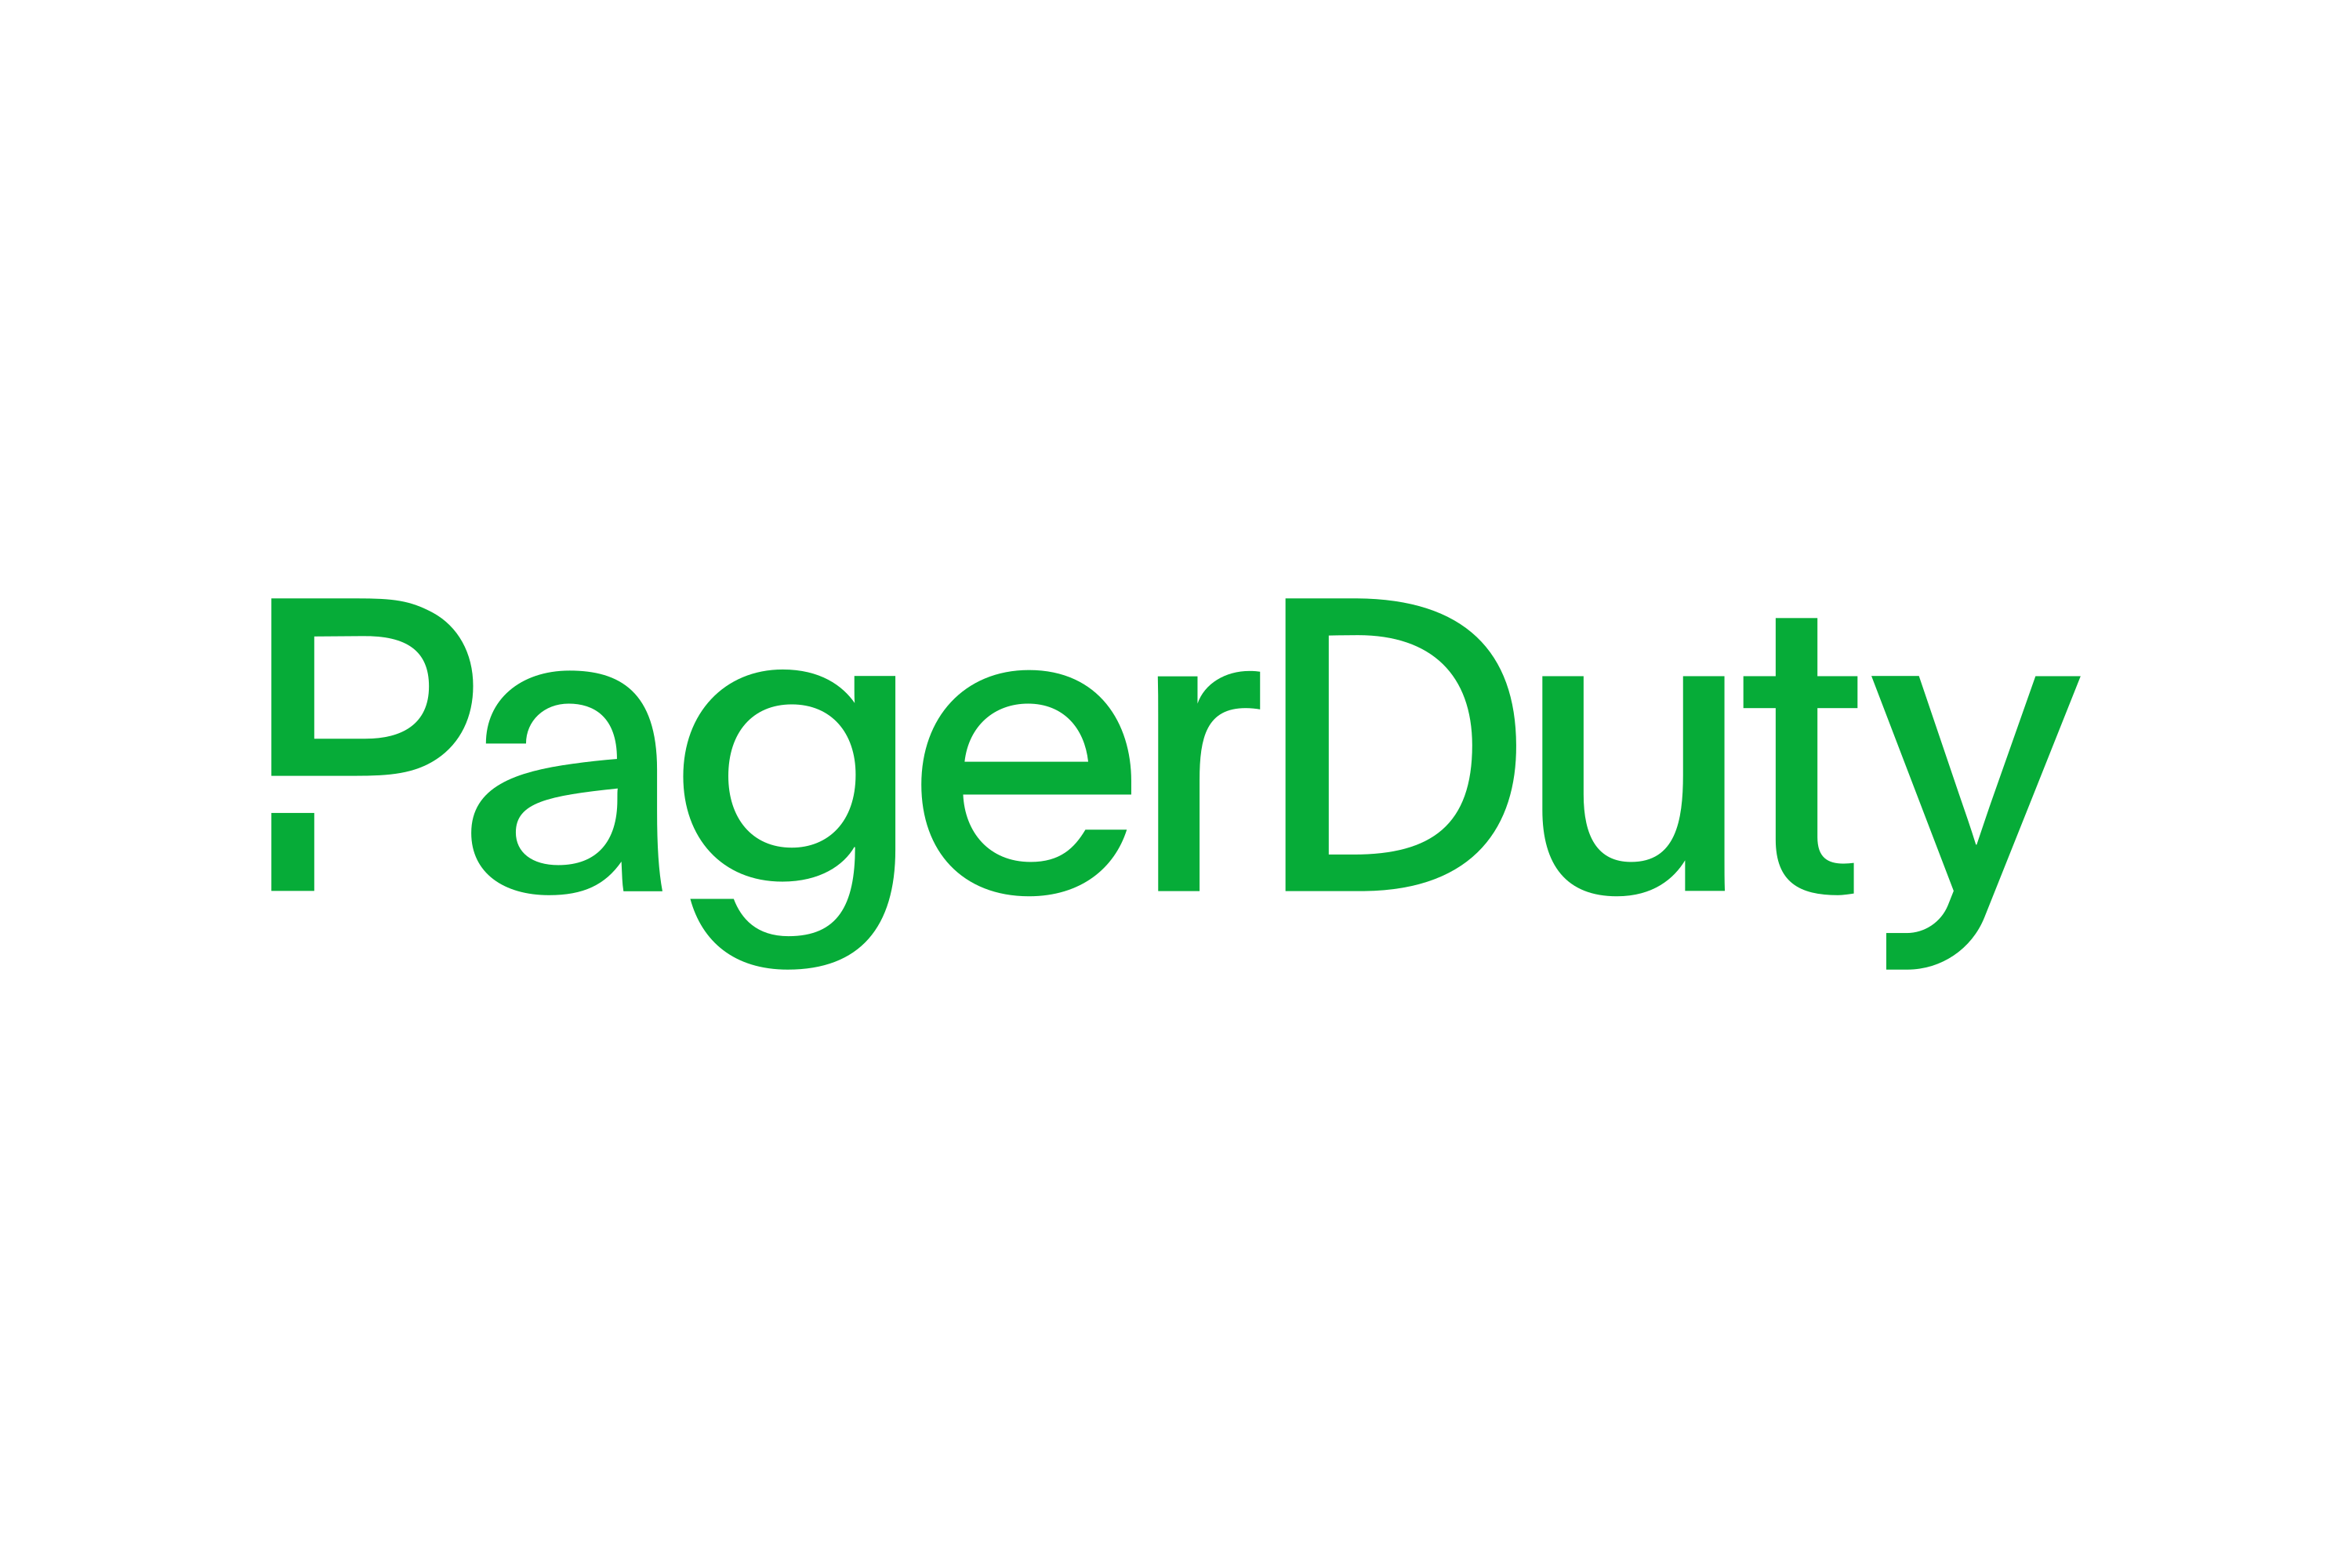 Download PagerDuty Logo in SVG Vector or PNG File Format - Logo.wine